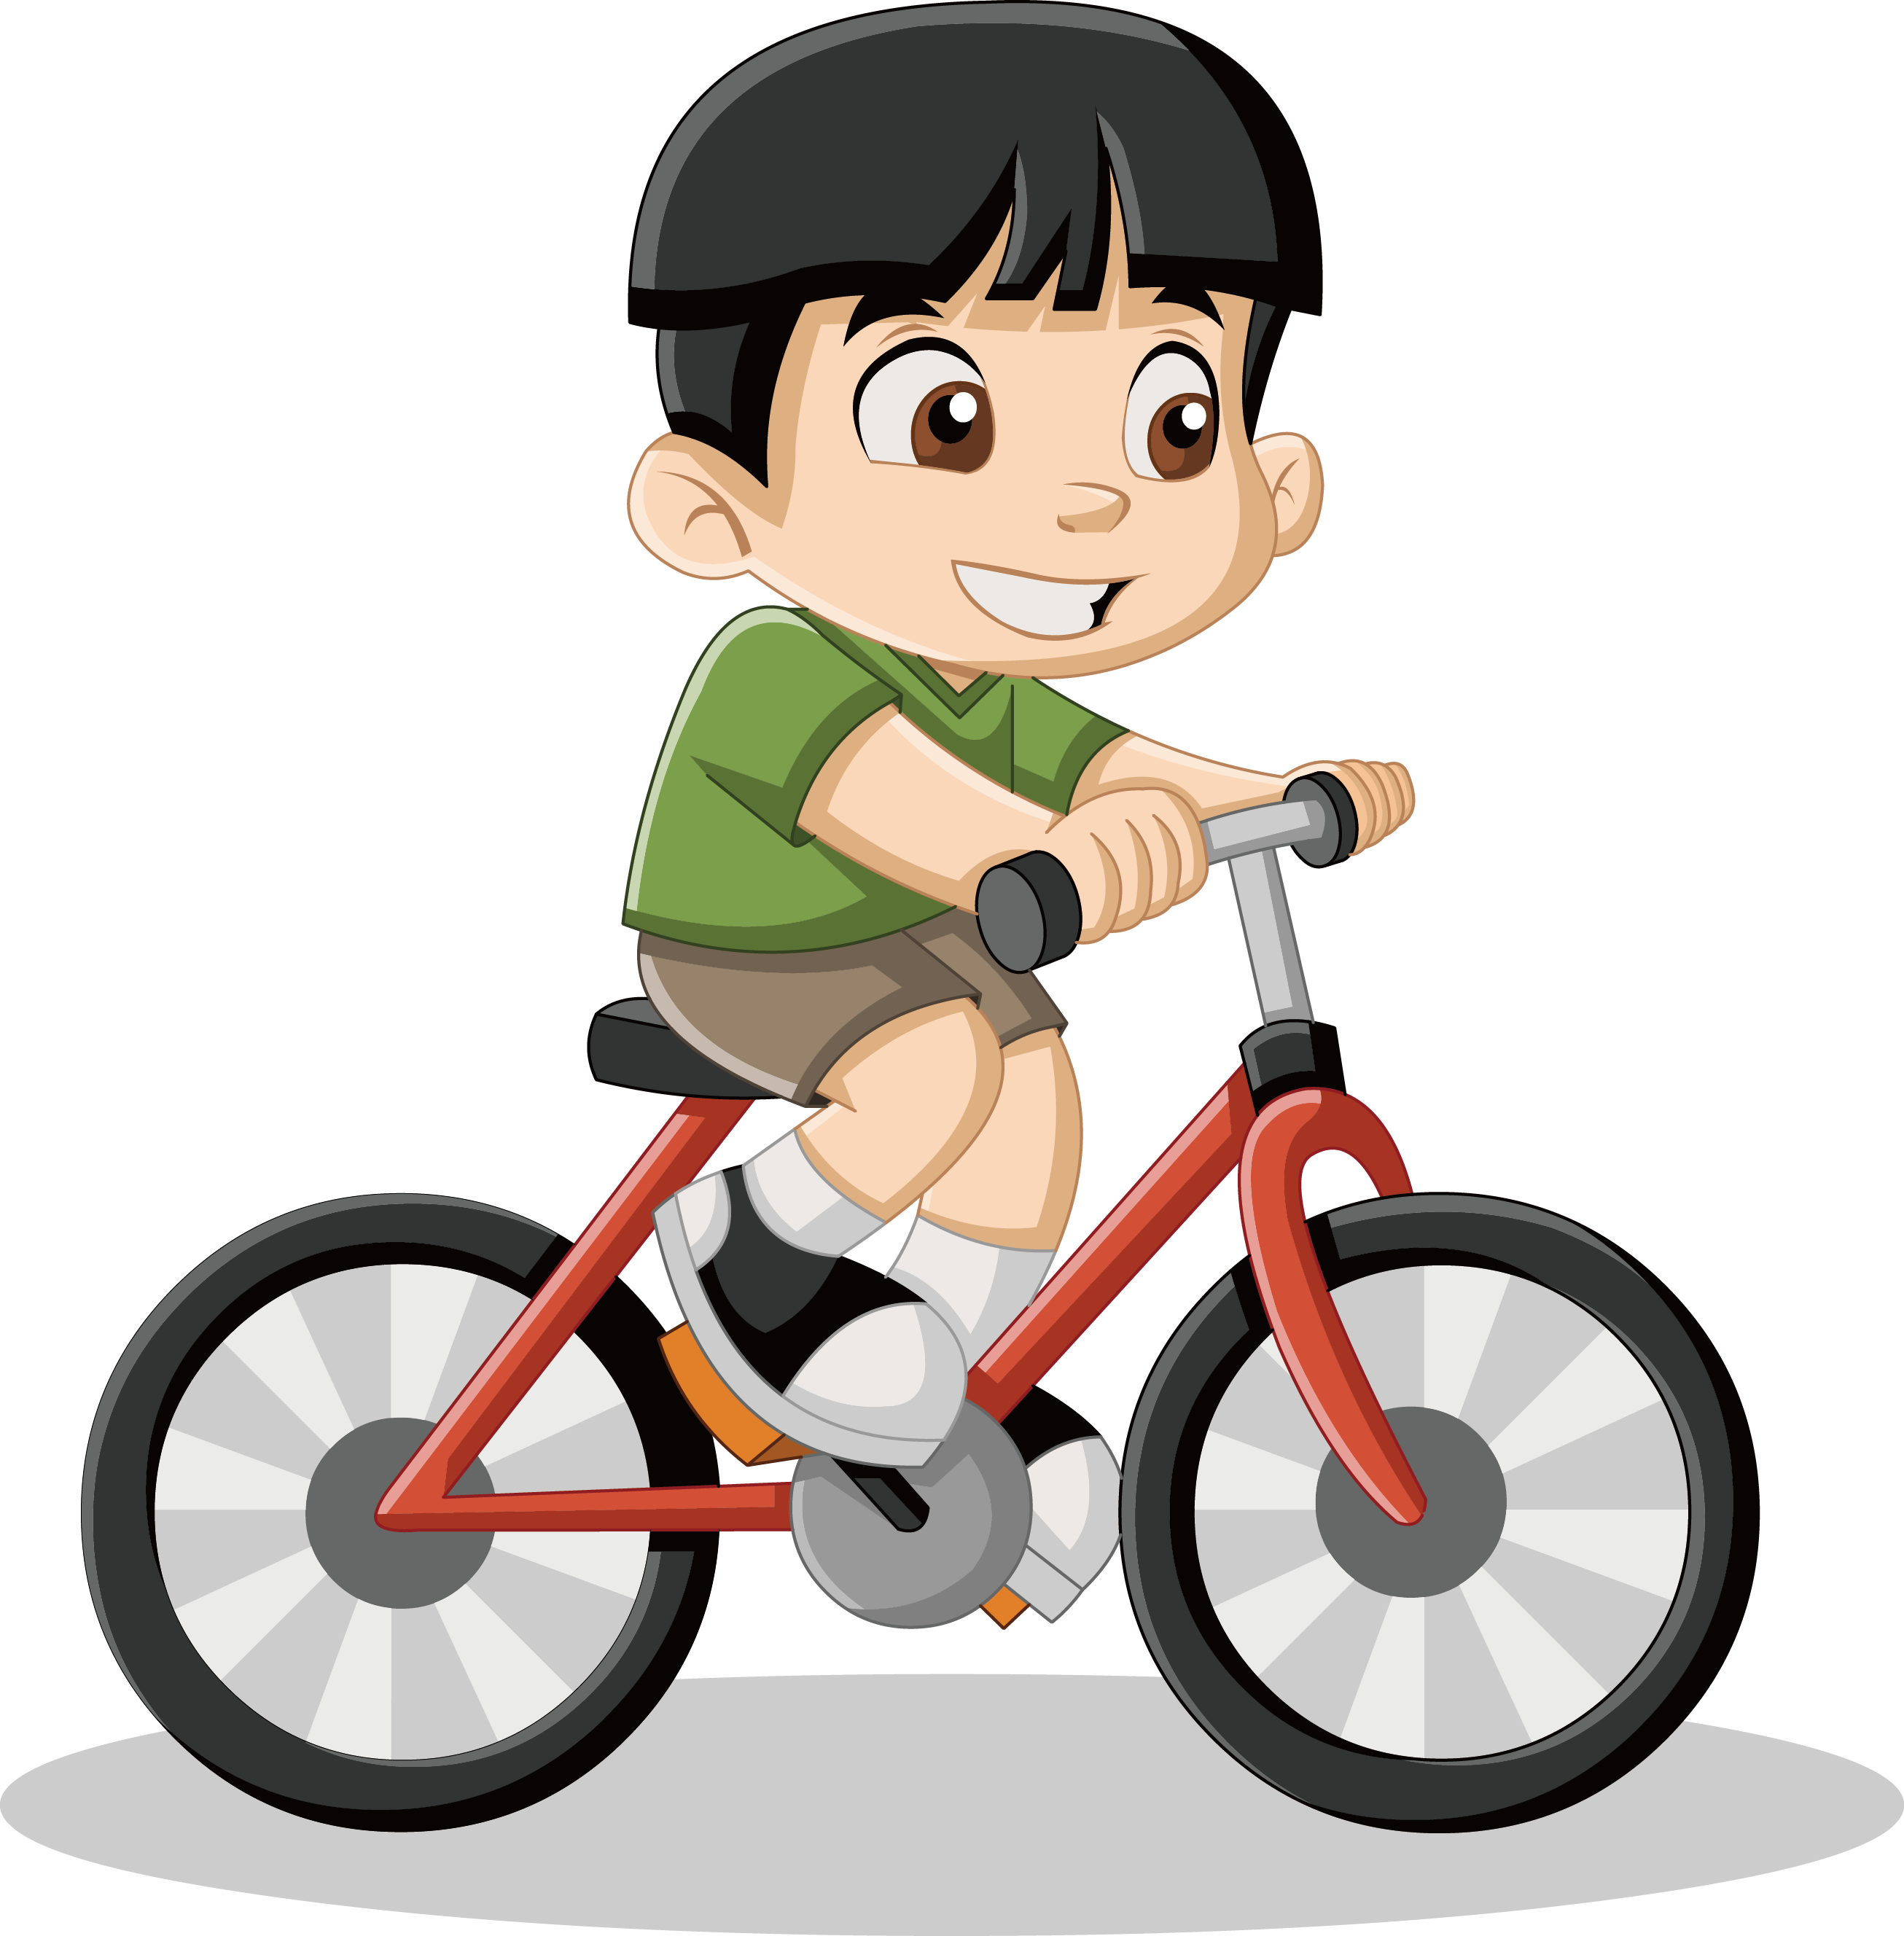 Cycle clipart means transport, Picture #862286 cycle clipart.